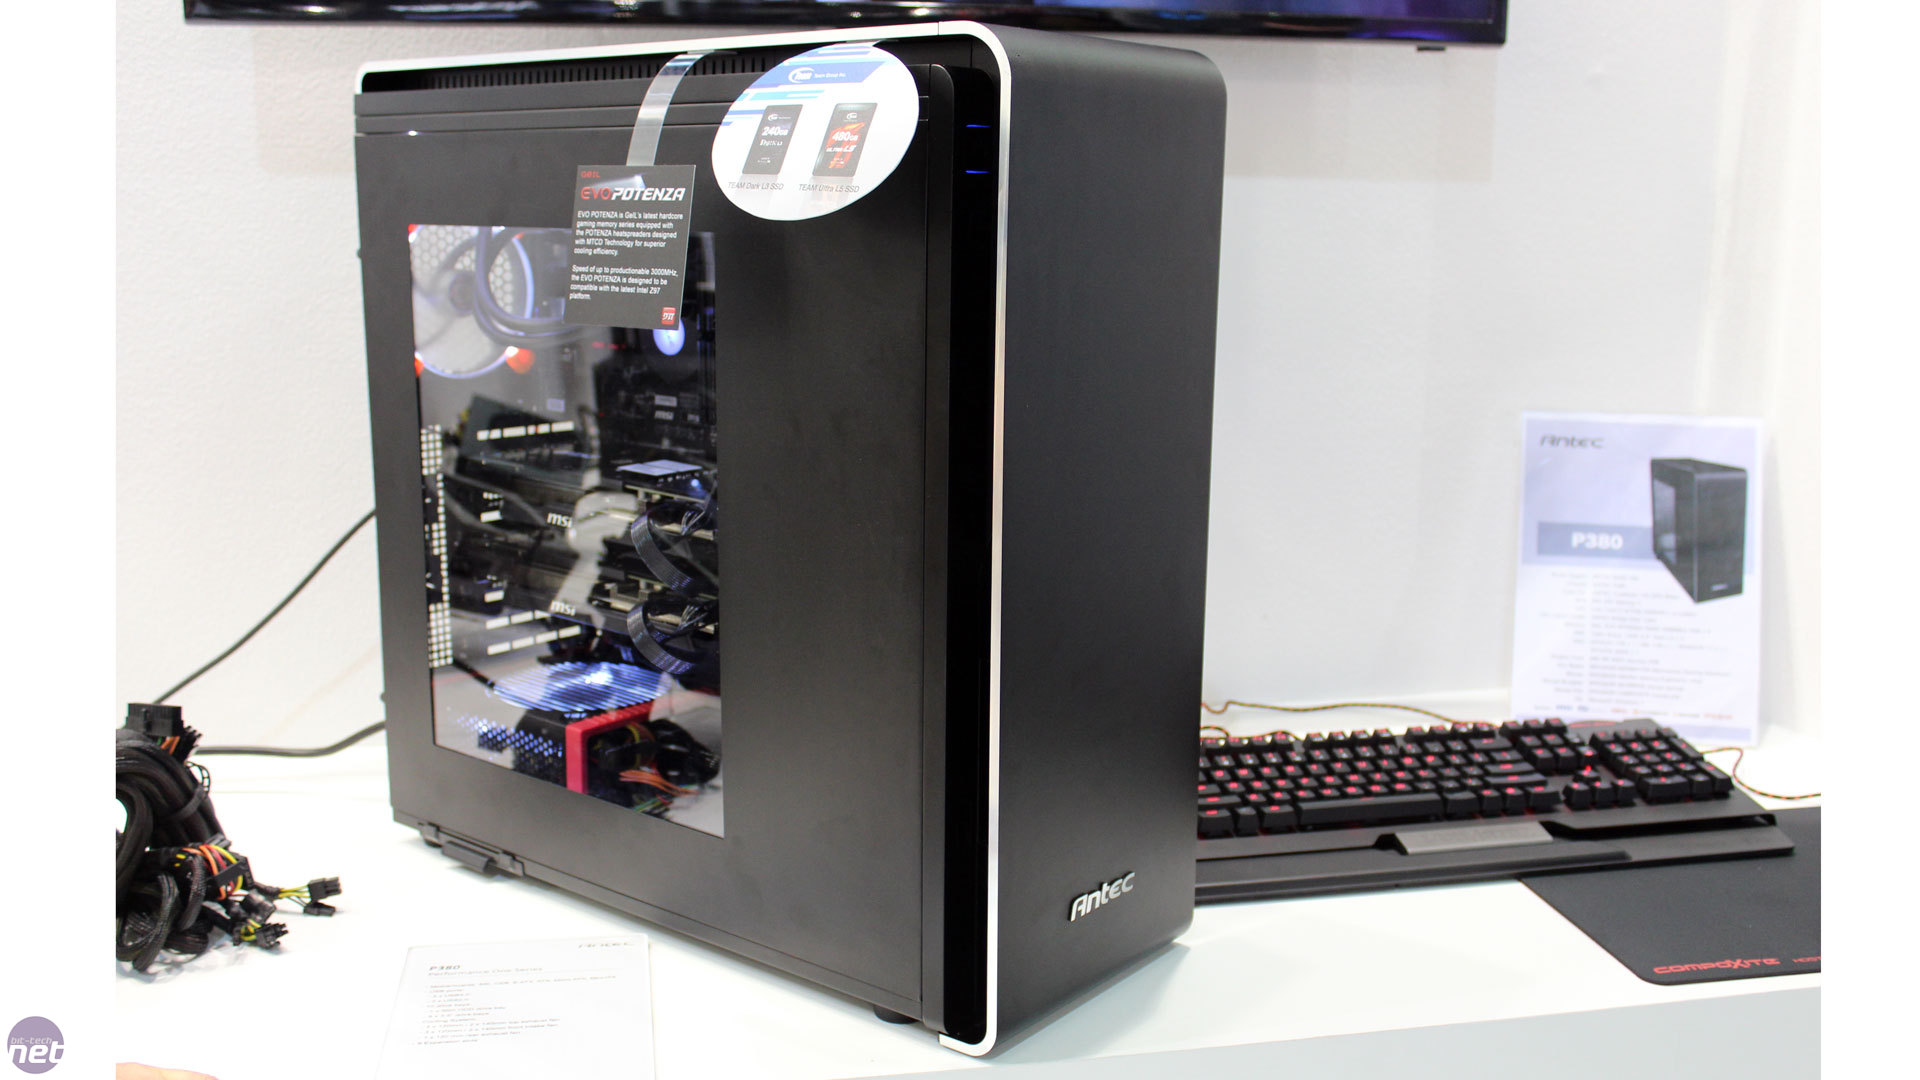 The Antec Performance One P380 medium tower casing.